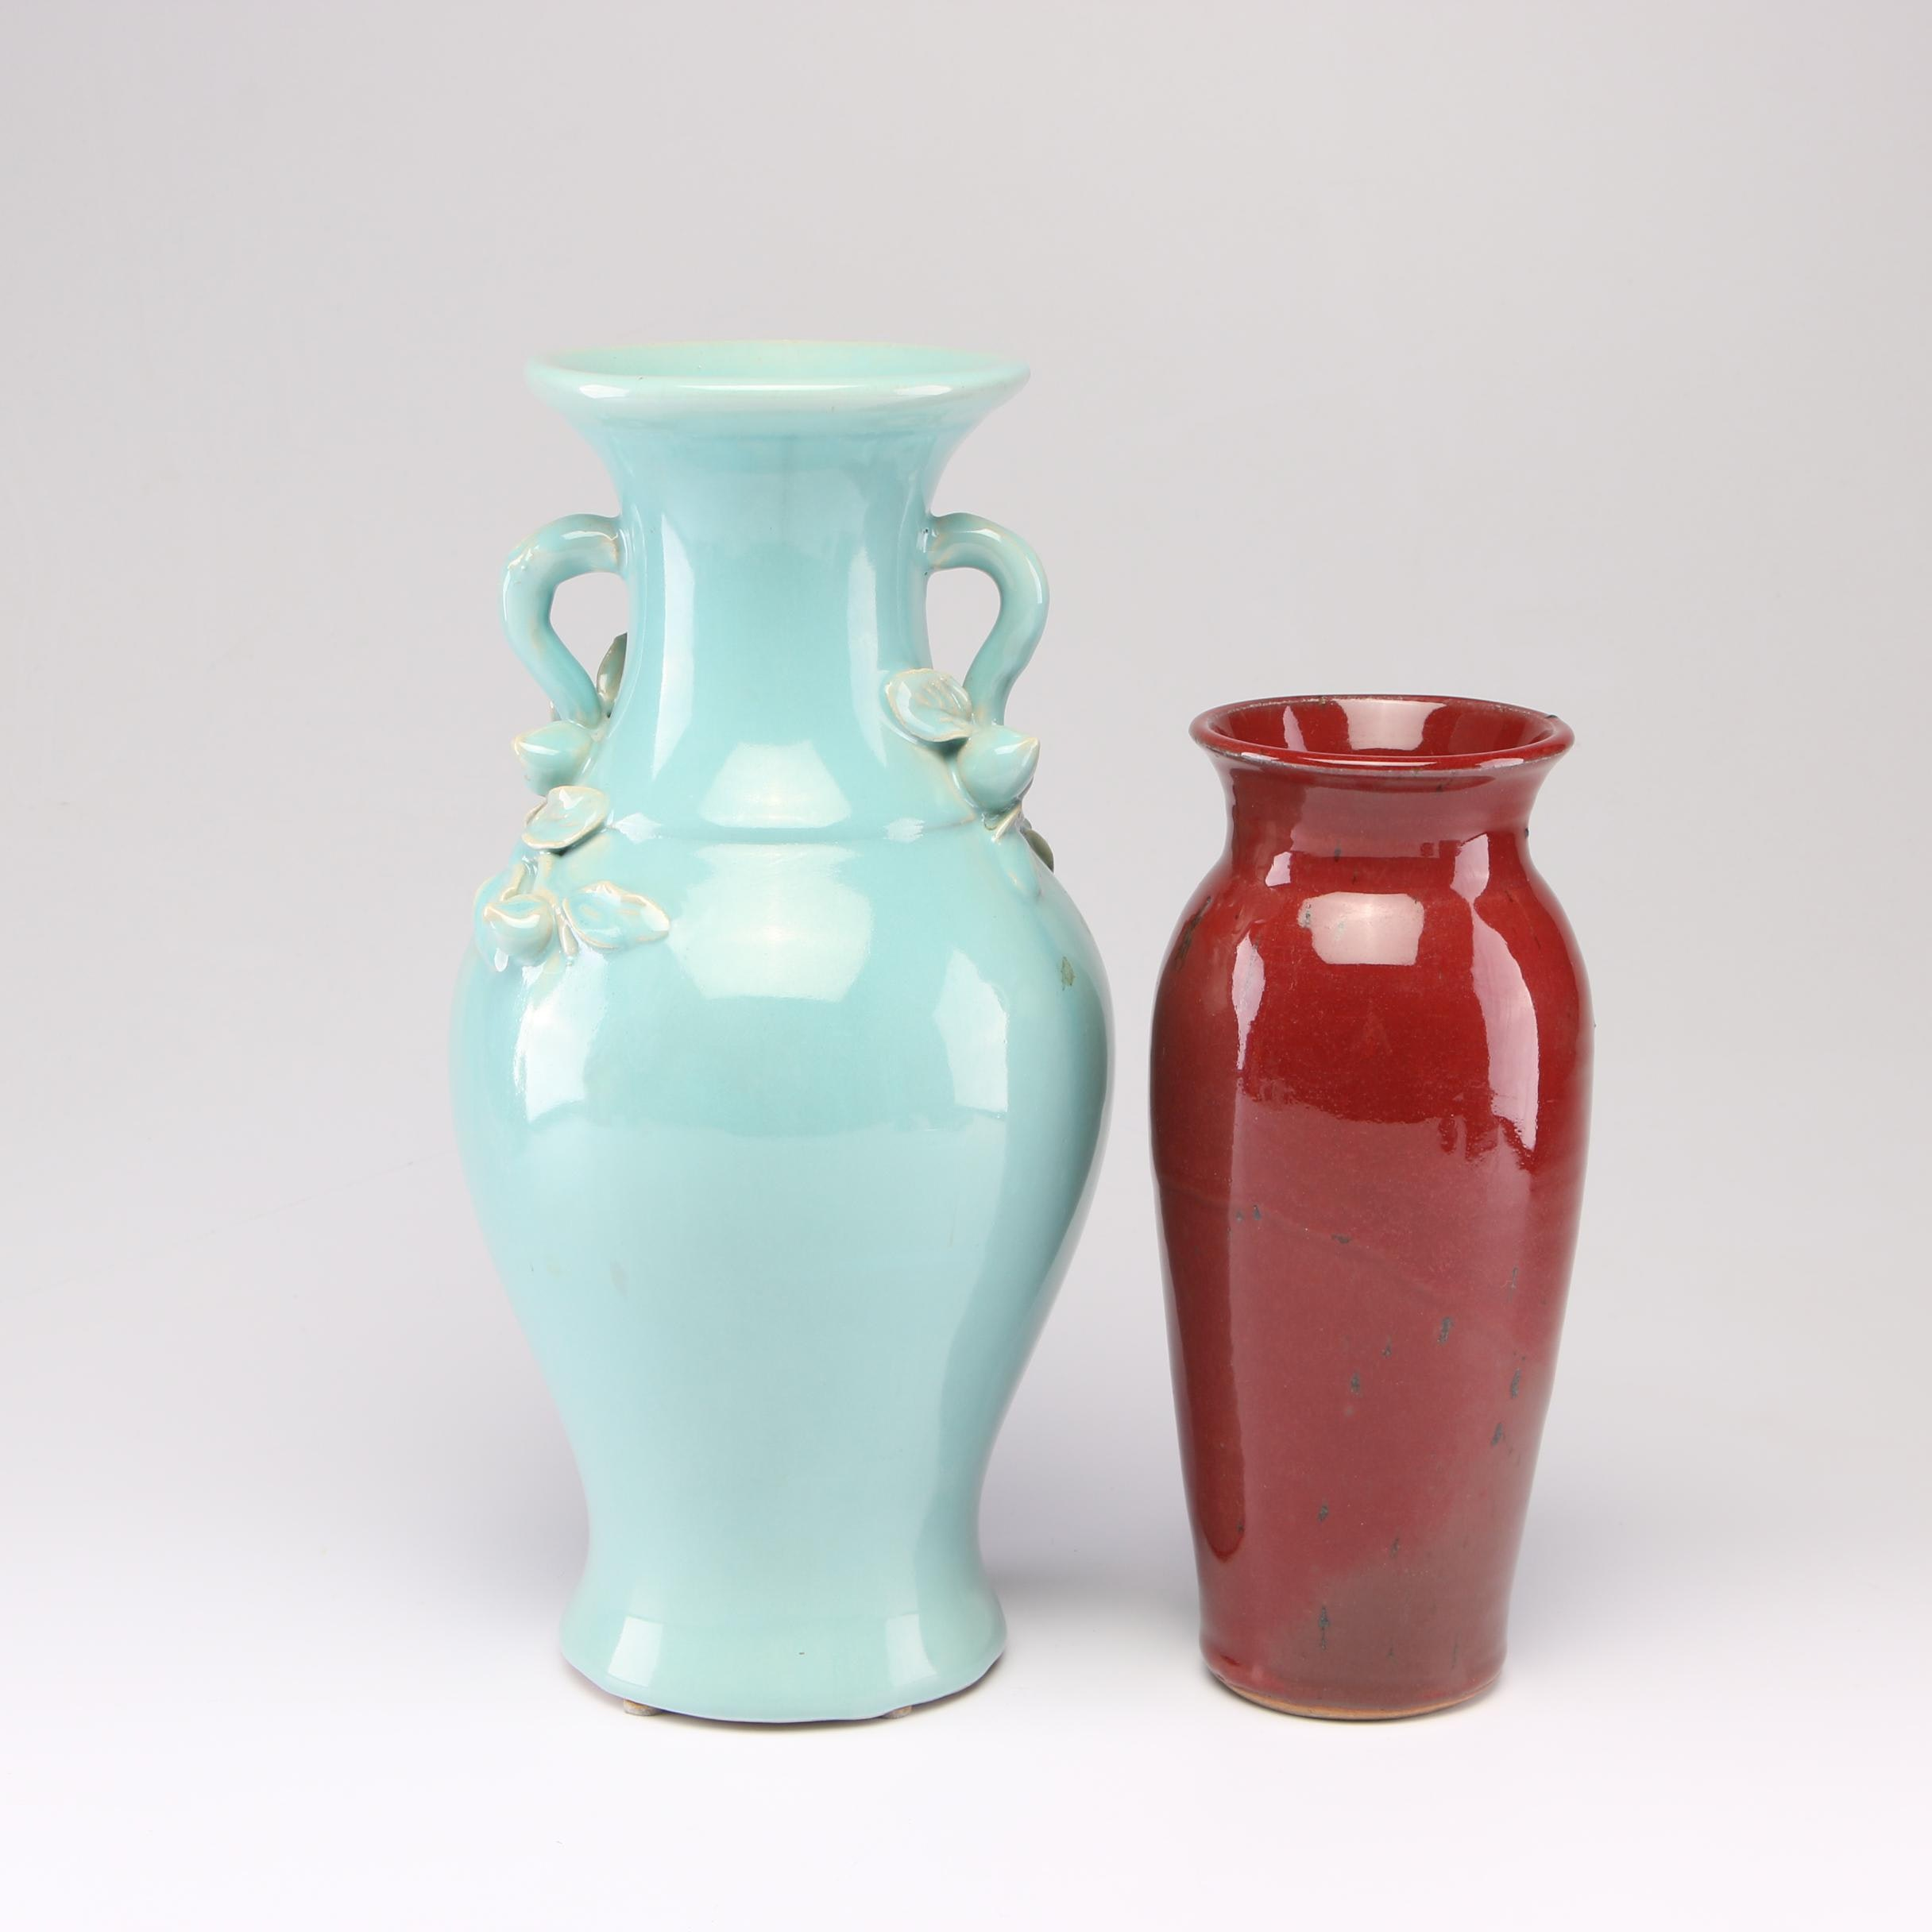 Thrown Stoneware and Porcelain Vases Including Emmett Collier